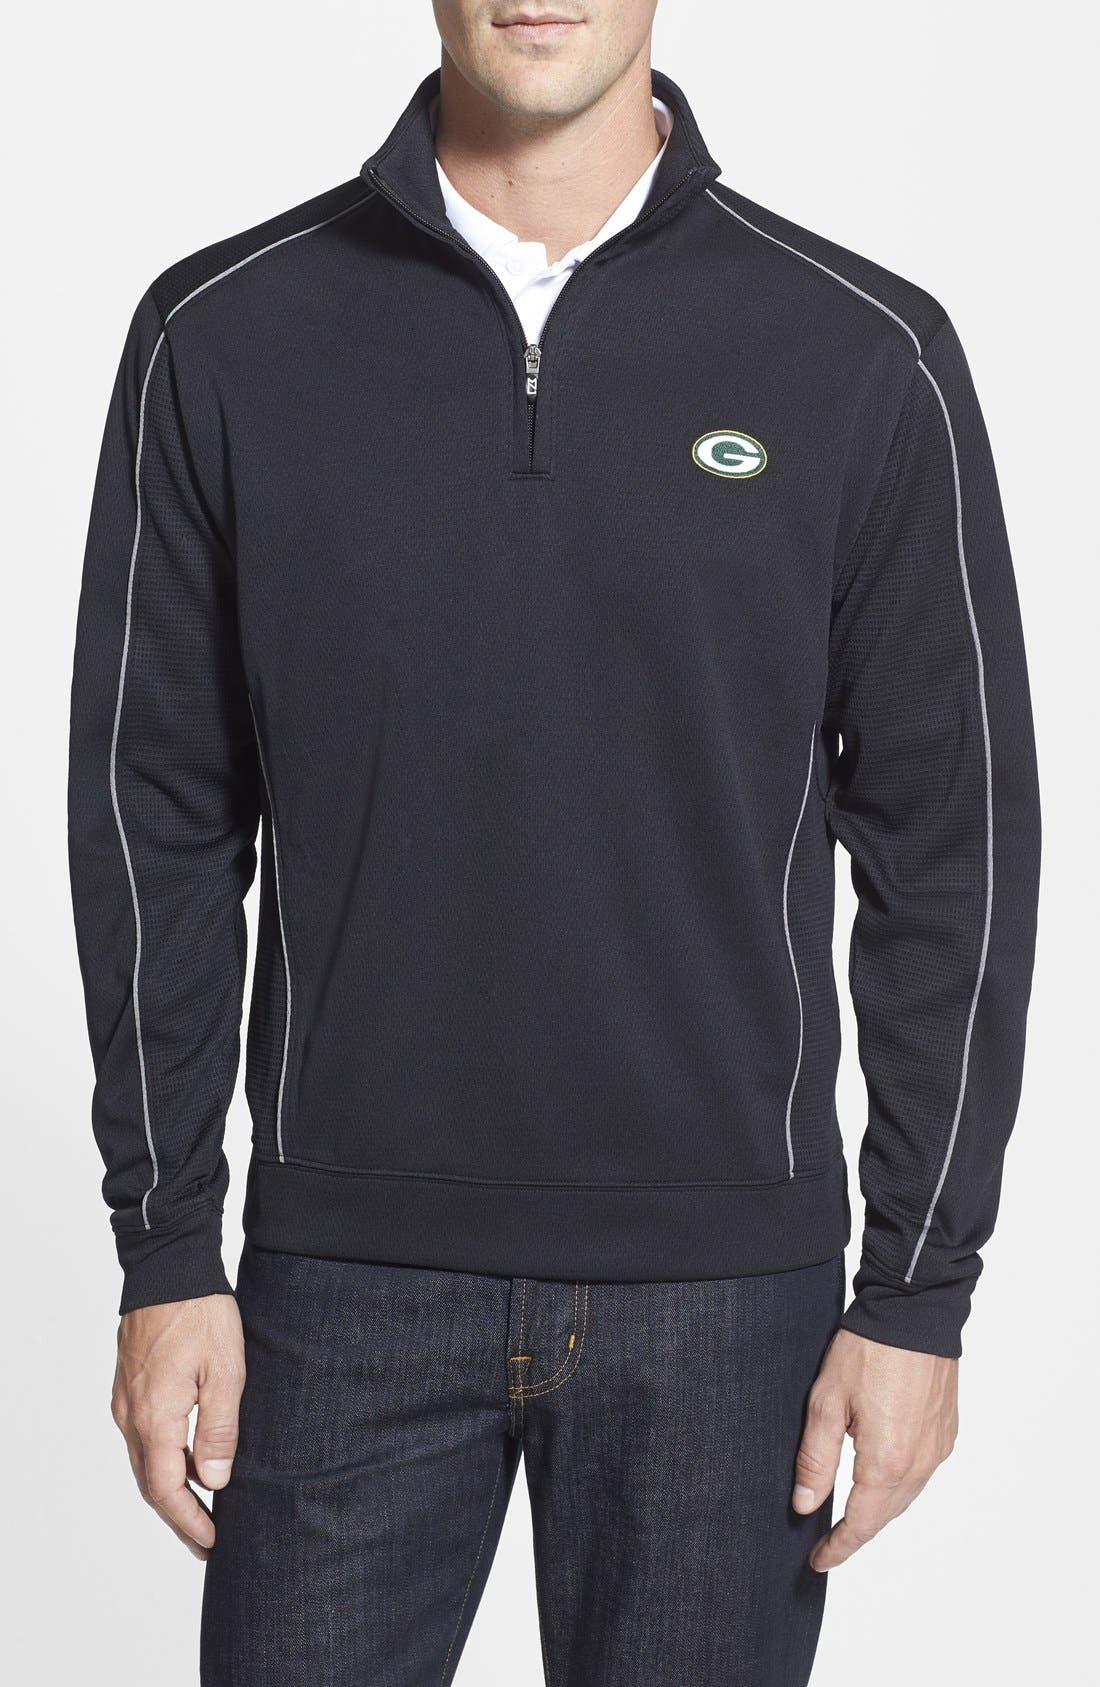 Green Bay Packers - Edge DryTec Moisture Wicking Half Zip Pullover,                         Main,                         color, 001